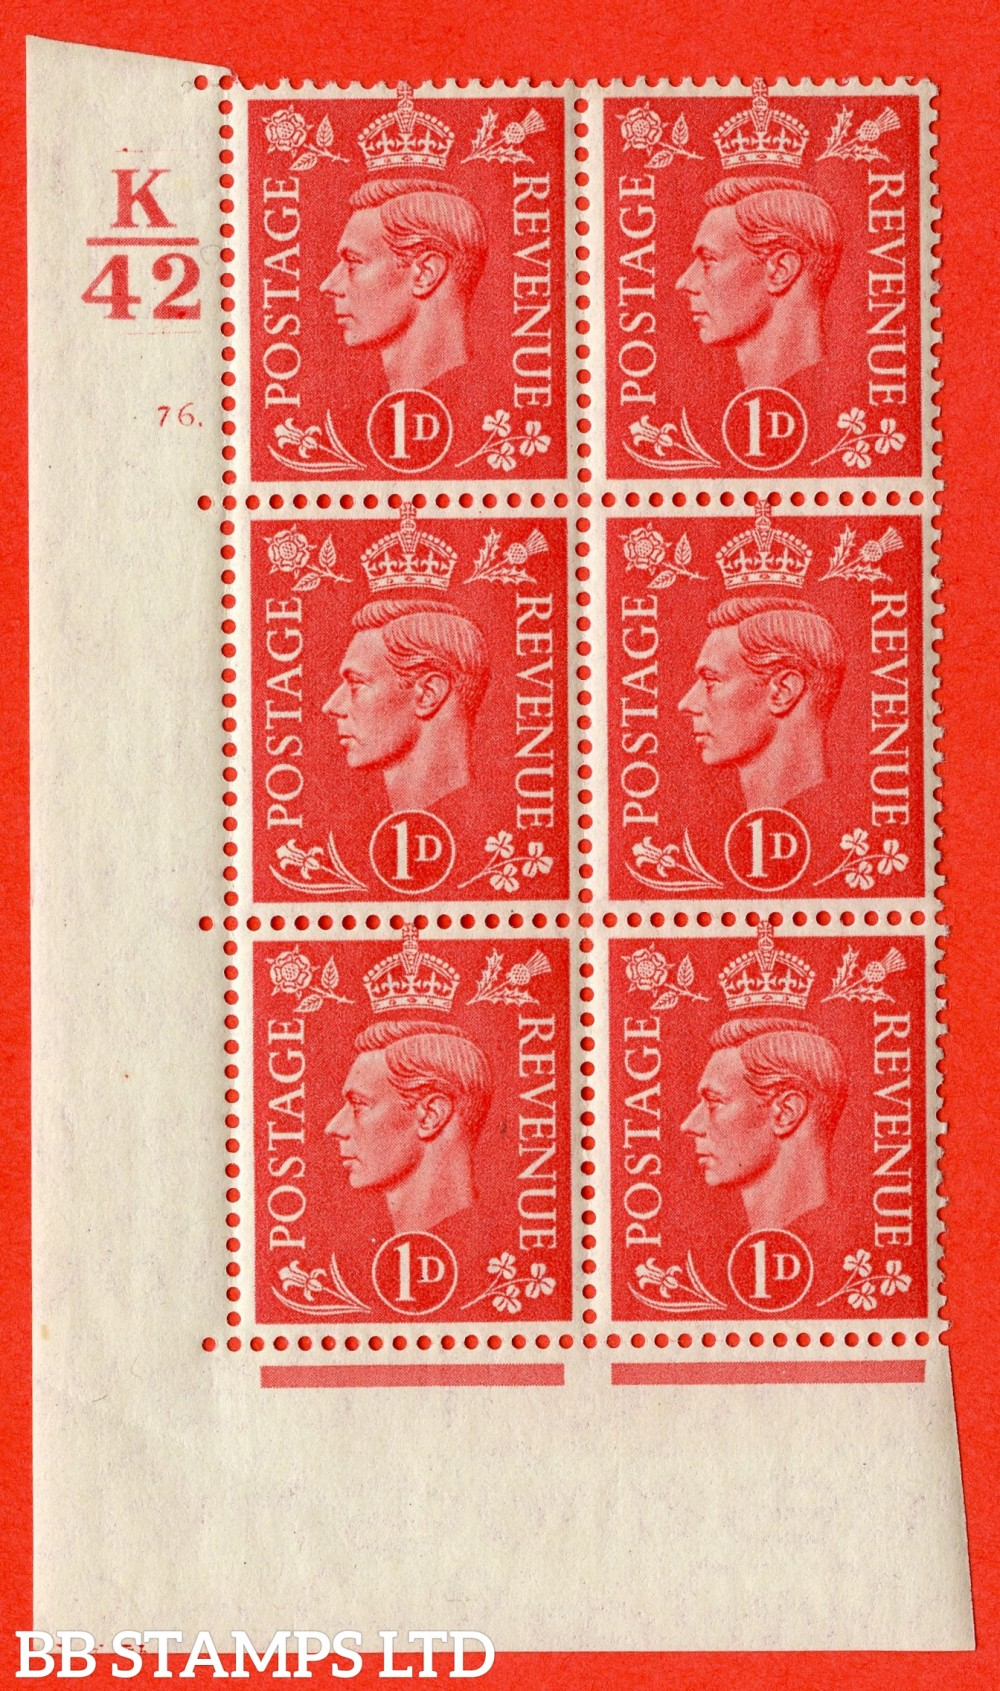 "SG. 486. Q5. 1d Pale scarlet. Asuperb UNMOUNTED MINT "" Control K42  cylinder 76 dot "" control block of 6 with perf type 5 E/I."